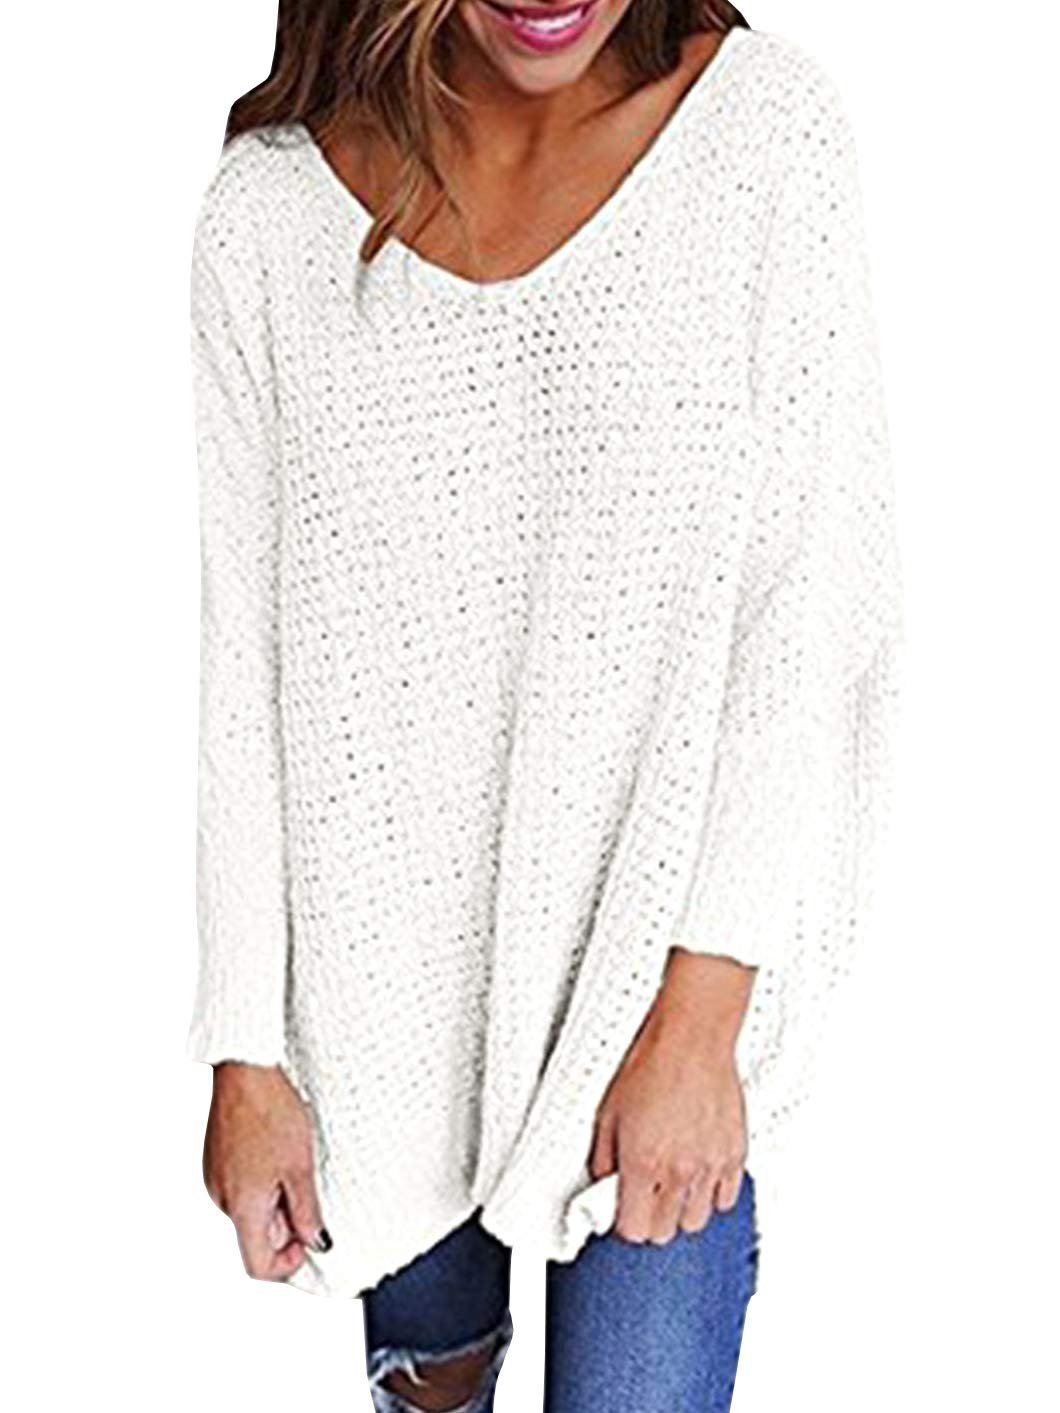 Chuanqi Womens Sweaters Oversized V Neck Loose Knit Pullover Long Batwing Sleeve Tops by Chuanqi (Image #1)